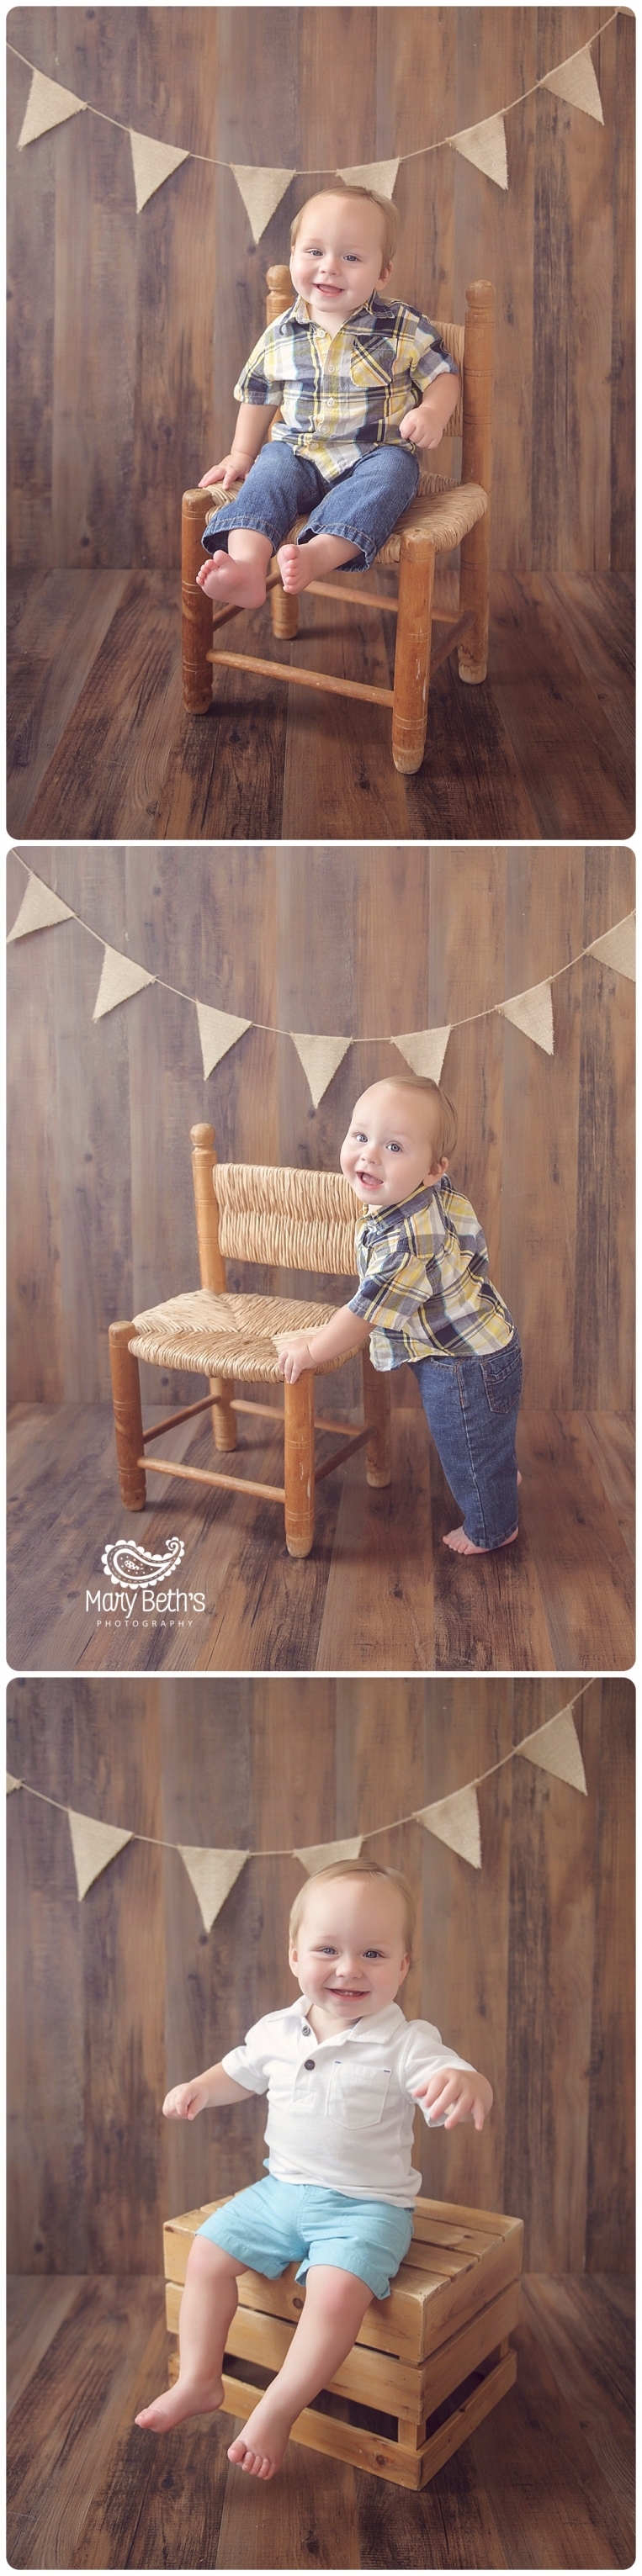 Andrew's 1st Birthday and Cake Smash Portraits for Mary Beth's Photography in Augusta, GA | Augusta GA Newborn Photographer, Augusta GA Family Photography #1stbirthday #cakesmash #customphotographysets #augustaga #bobthebuilder